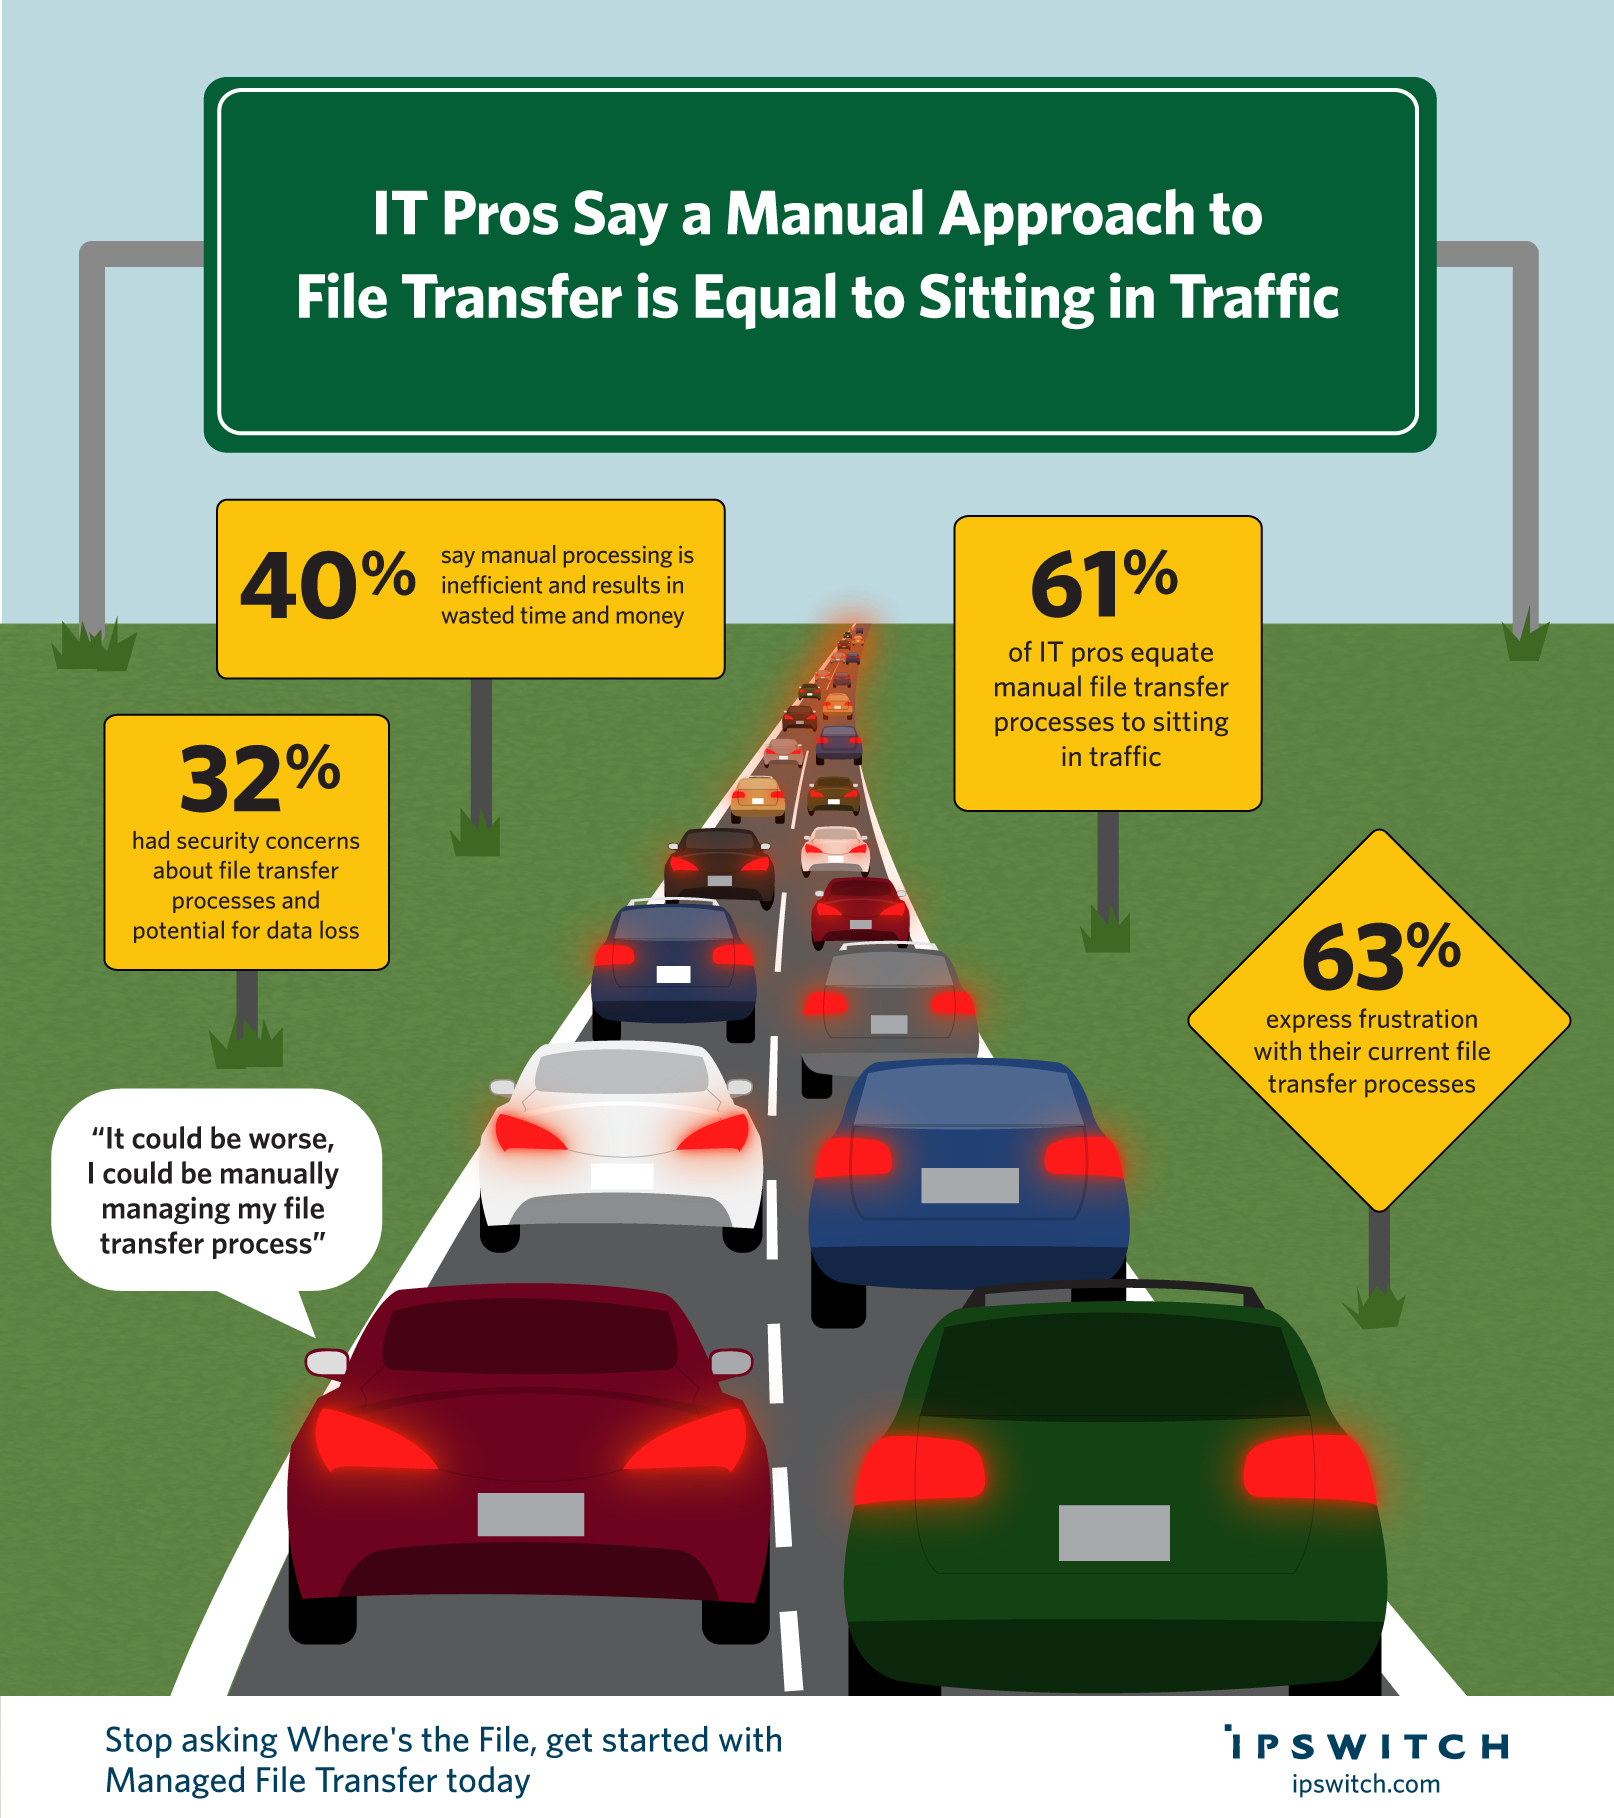 A recent survey conducted by Ipswitch of more than 100 IT professionals highlighted the frustration felt with manual file transfer processes. Sixty one percent of respondents reported that manual file transfer was as enjoyable as sitting in traffic when asked to relate it to activities generally seen as unpleasant. (Graphic: Business Wire)